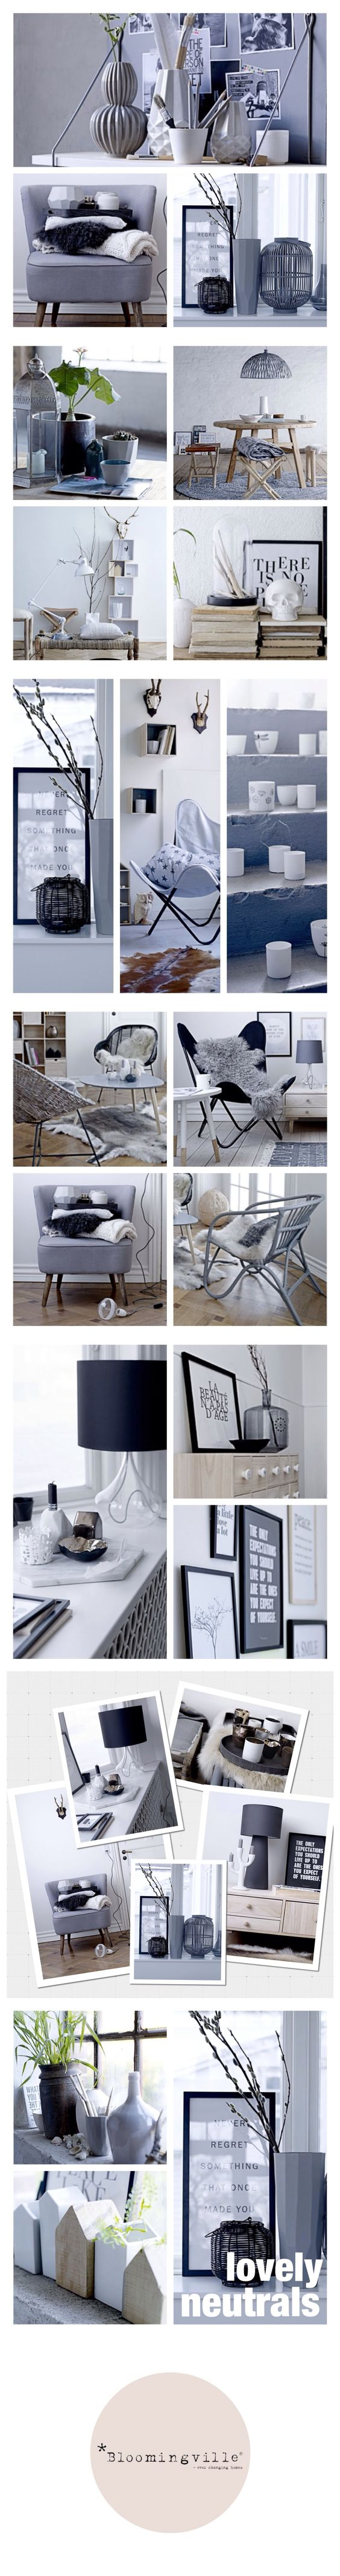 collage bloomingville bloomingville style moodboard work ideas collage ...